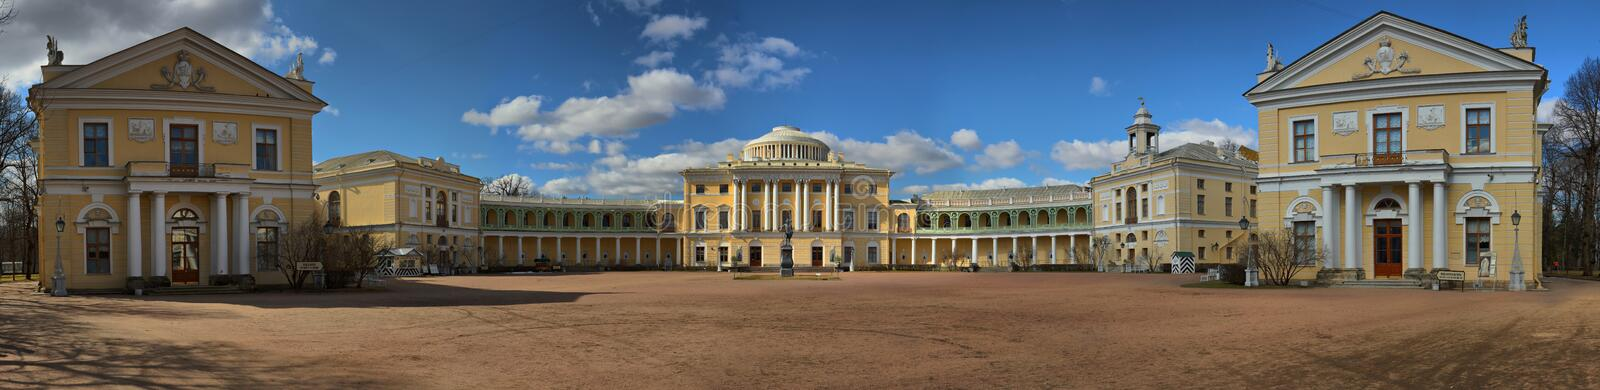 Pavlovsk, St Petersburg, Russland - 16. April 2018 Panorama des Pavlovsk-Palastes stockfotos